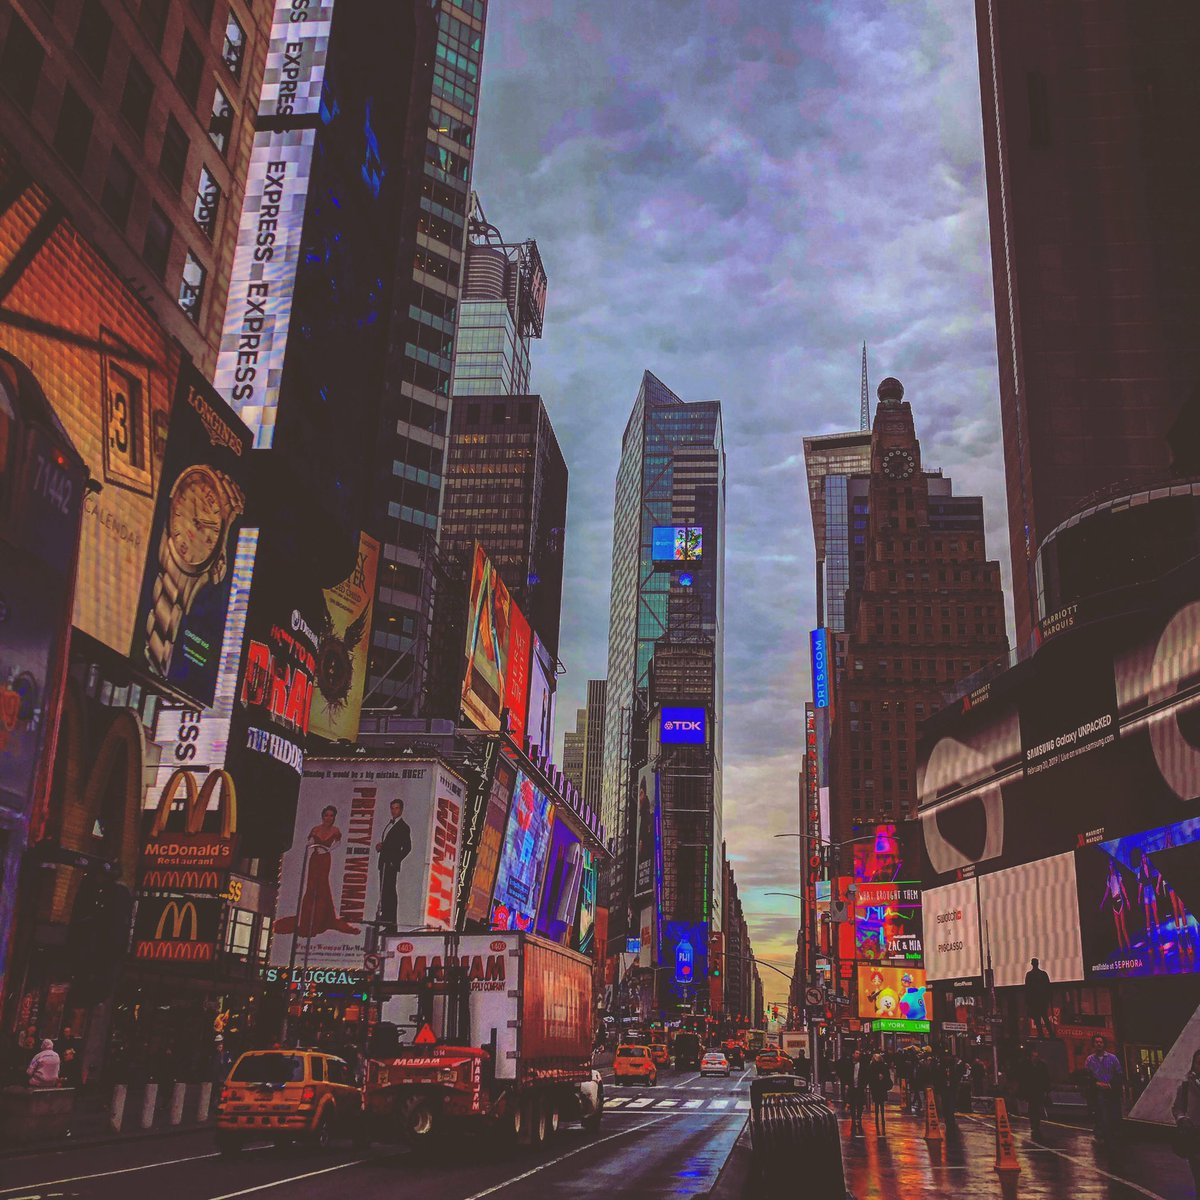 Took this the other day walking to work. Sunrise at the crossroads of the world. #NYC @TimesSquareNYC